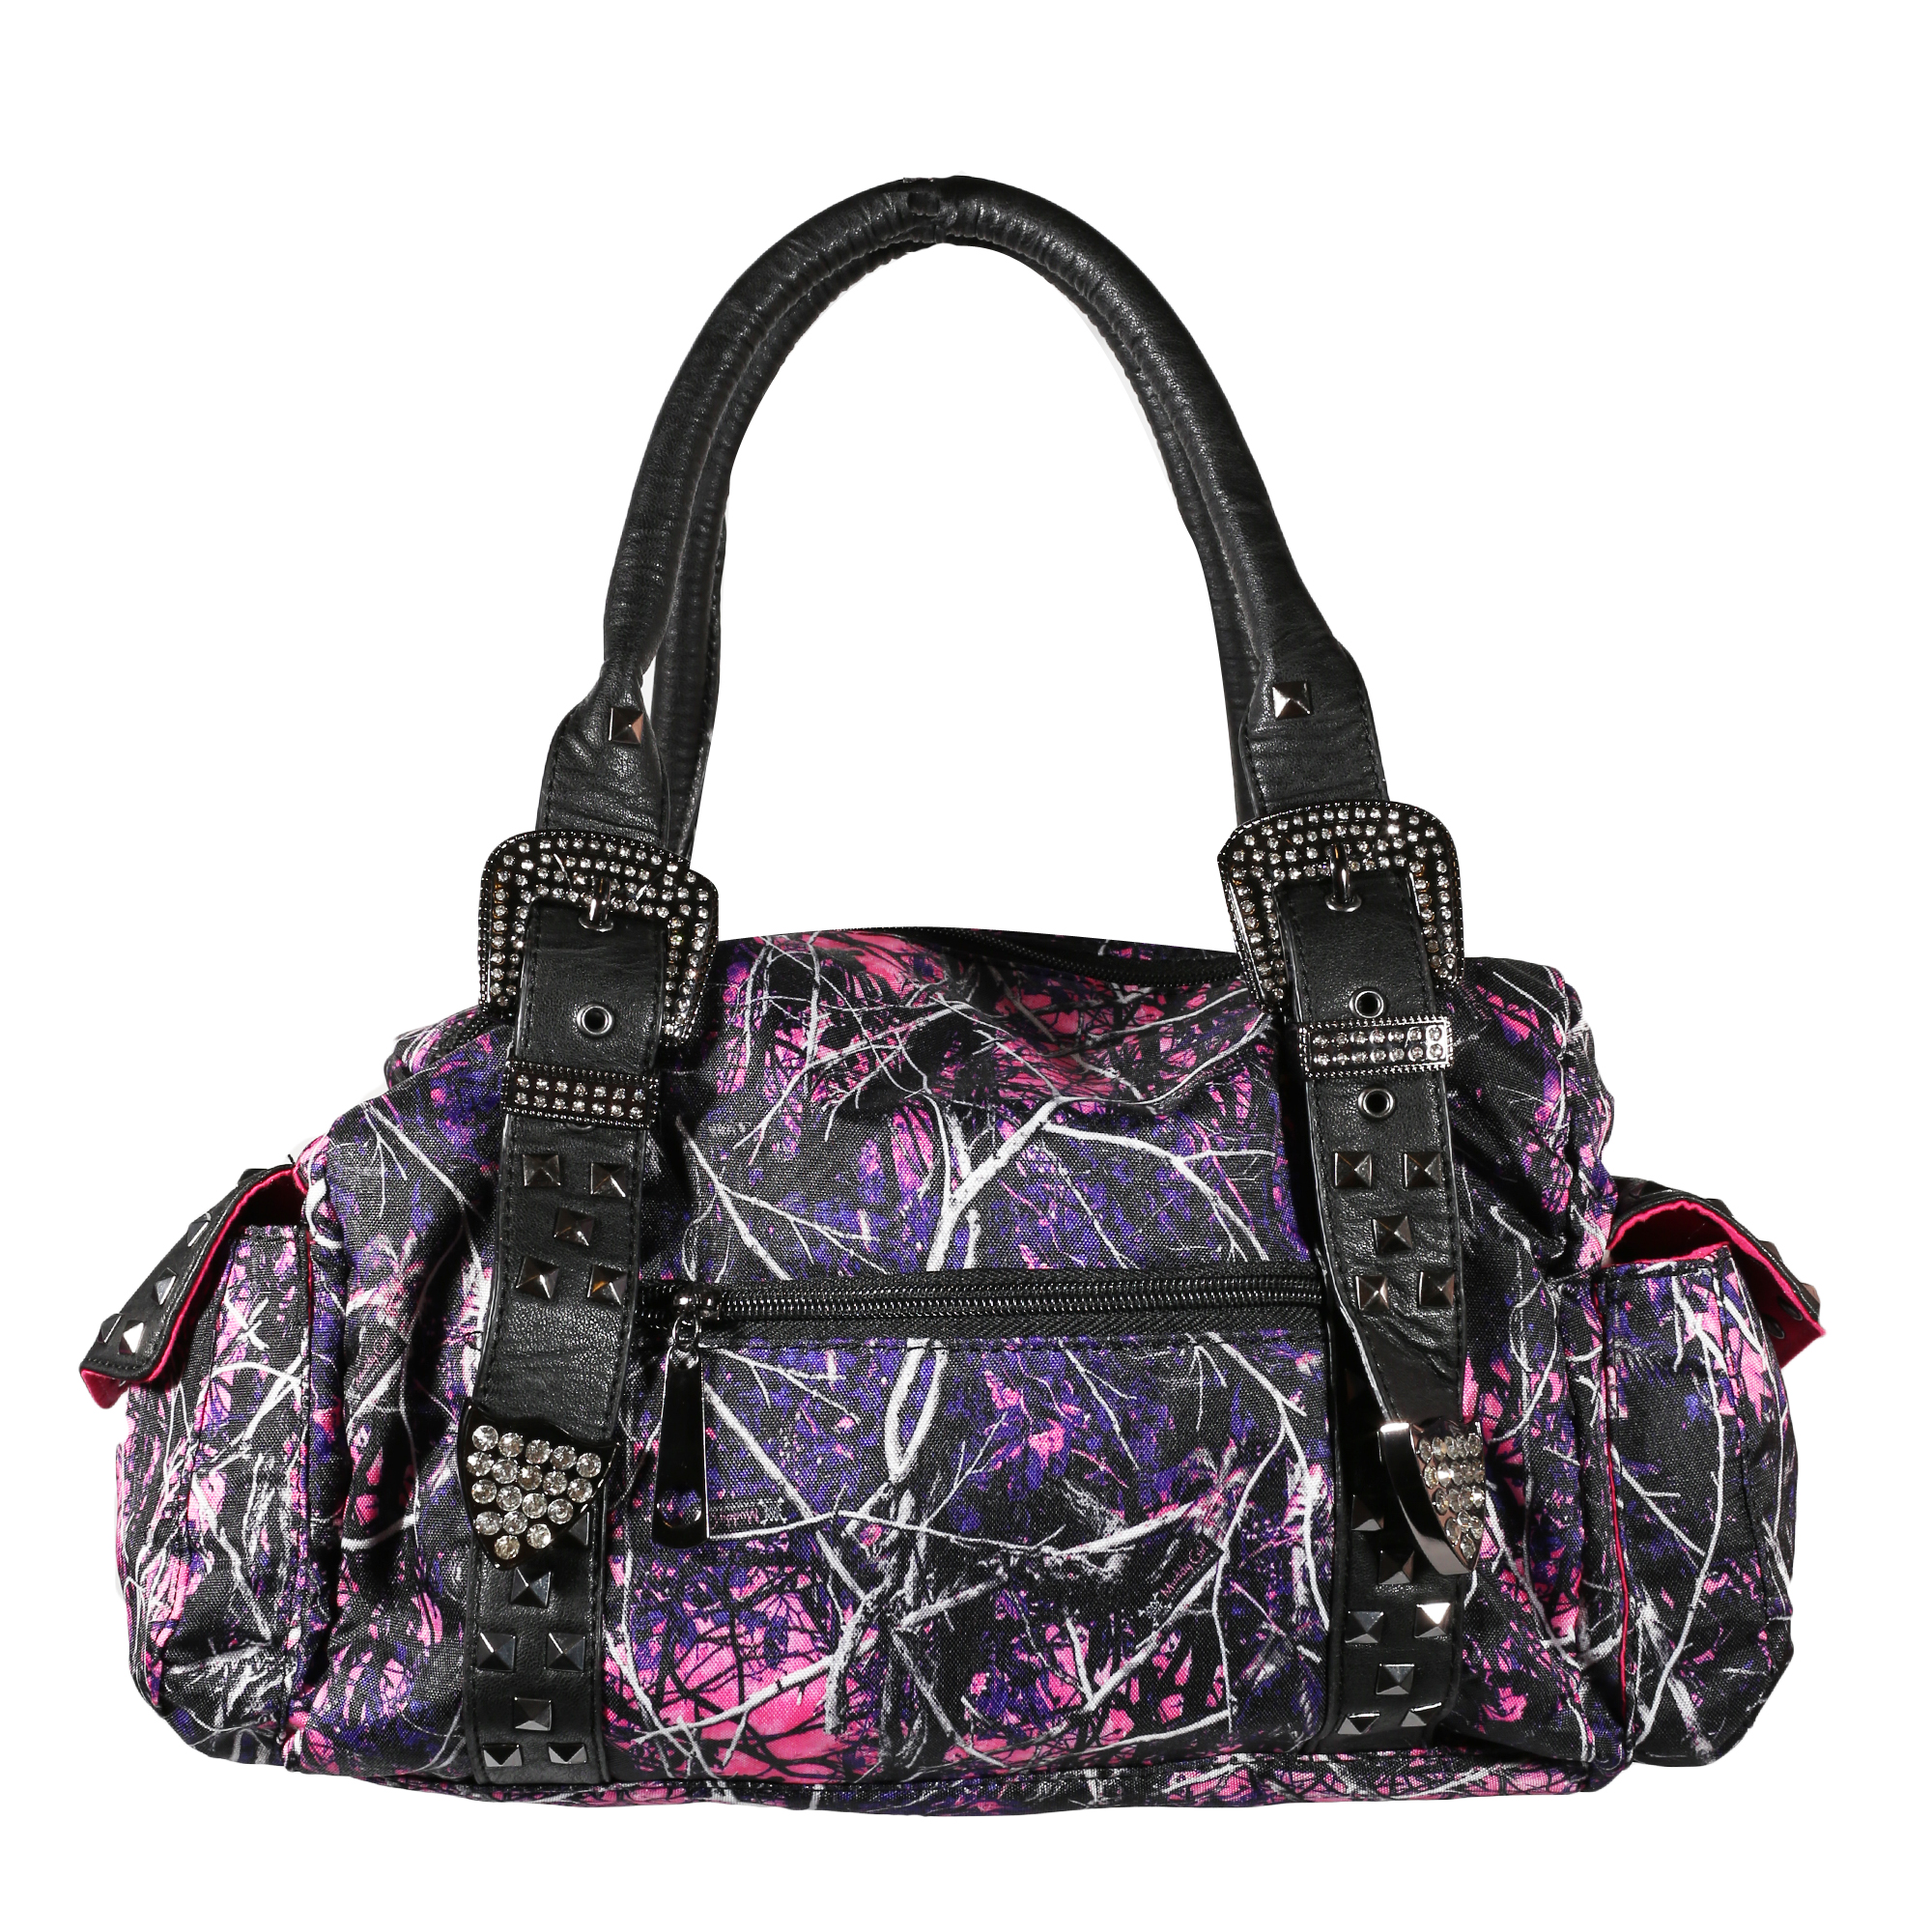 Monte Vista Muddy Girl Concealed Handgun Barrel Camouflage Purse